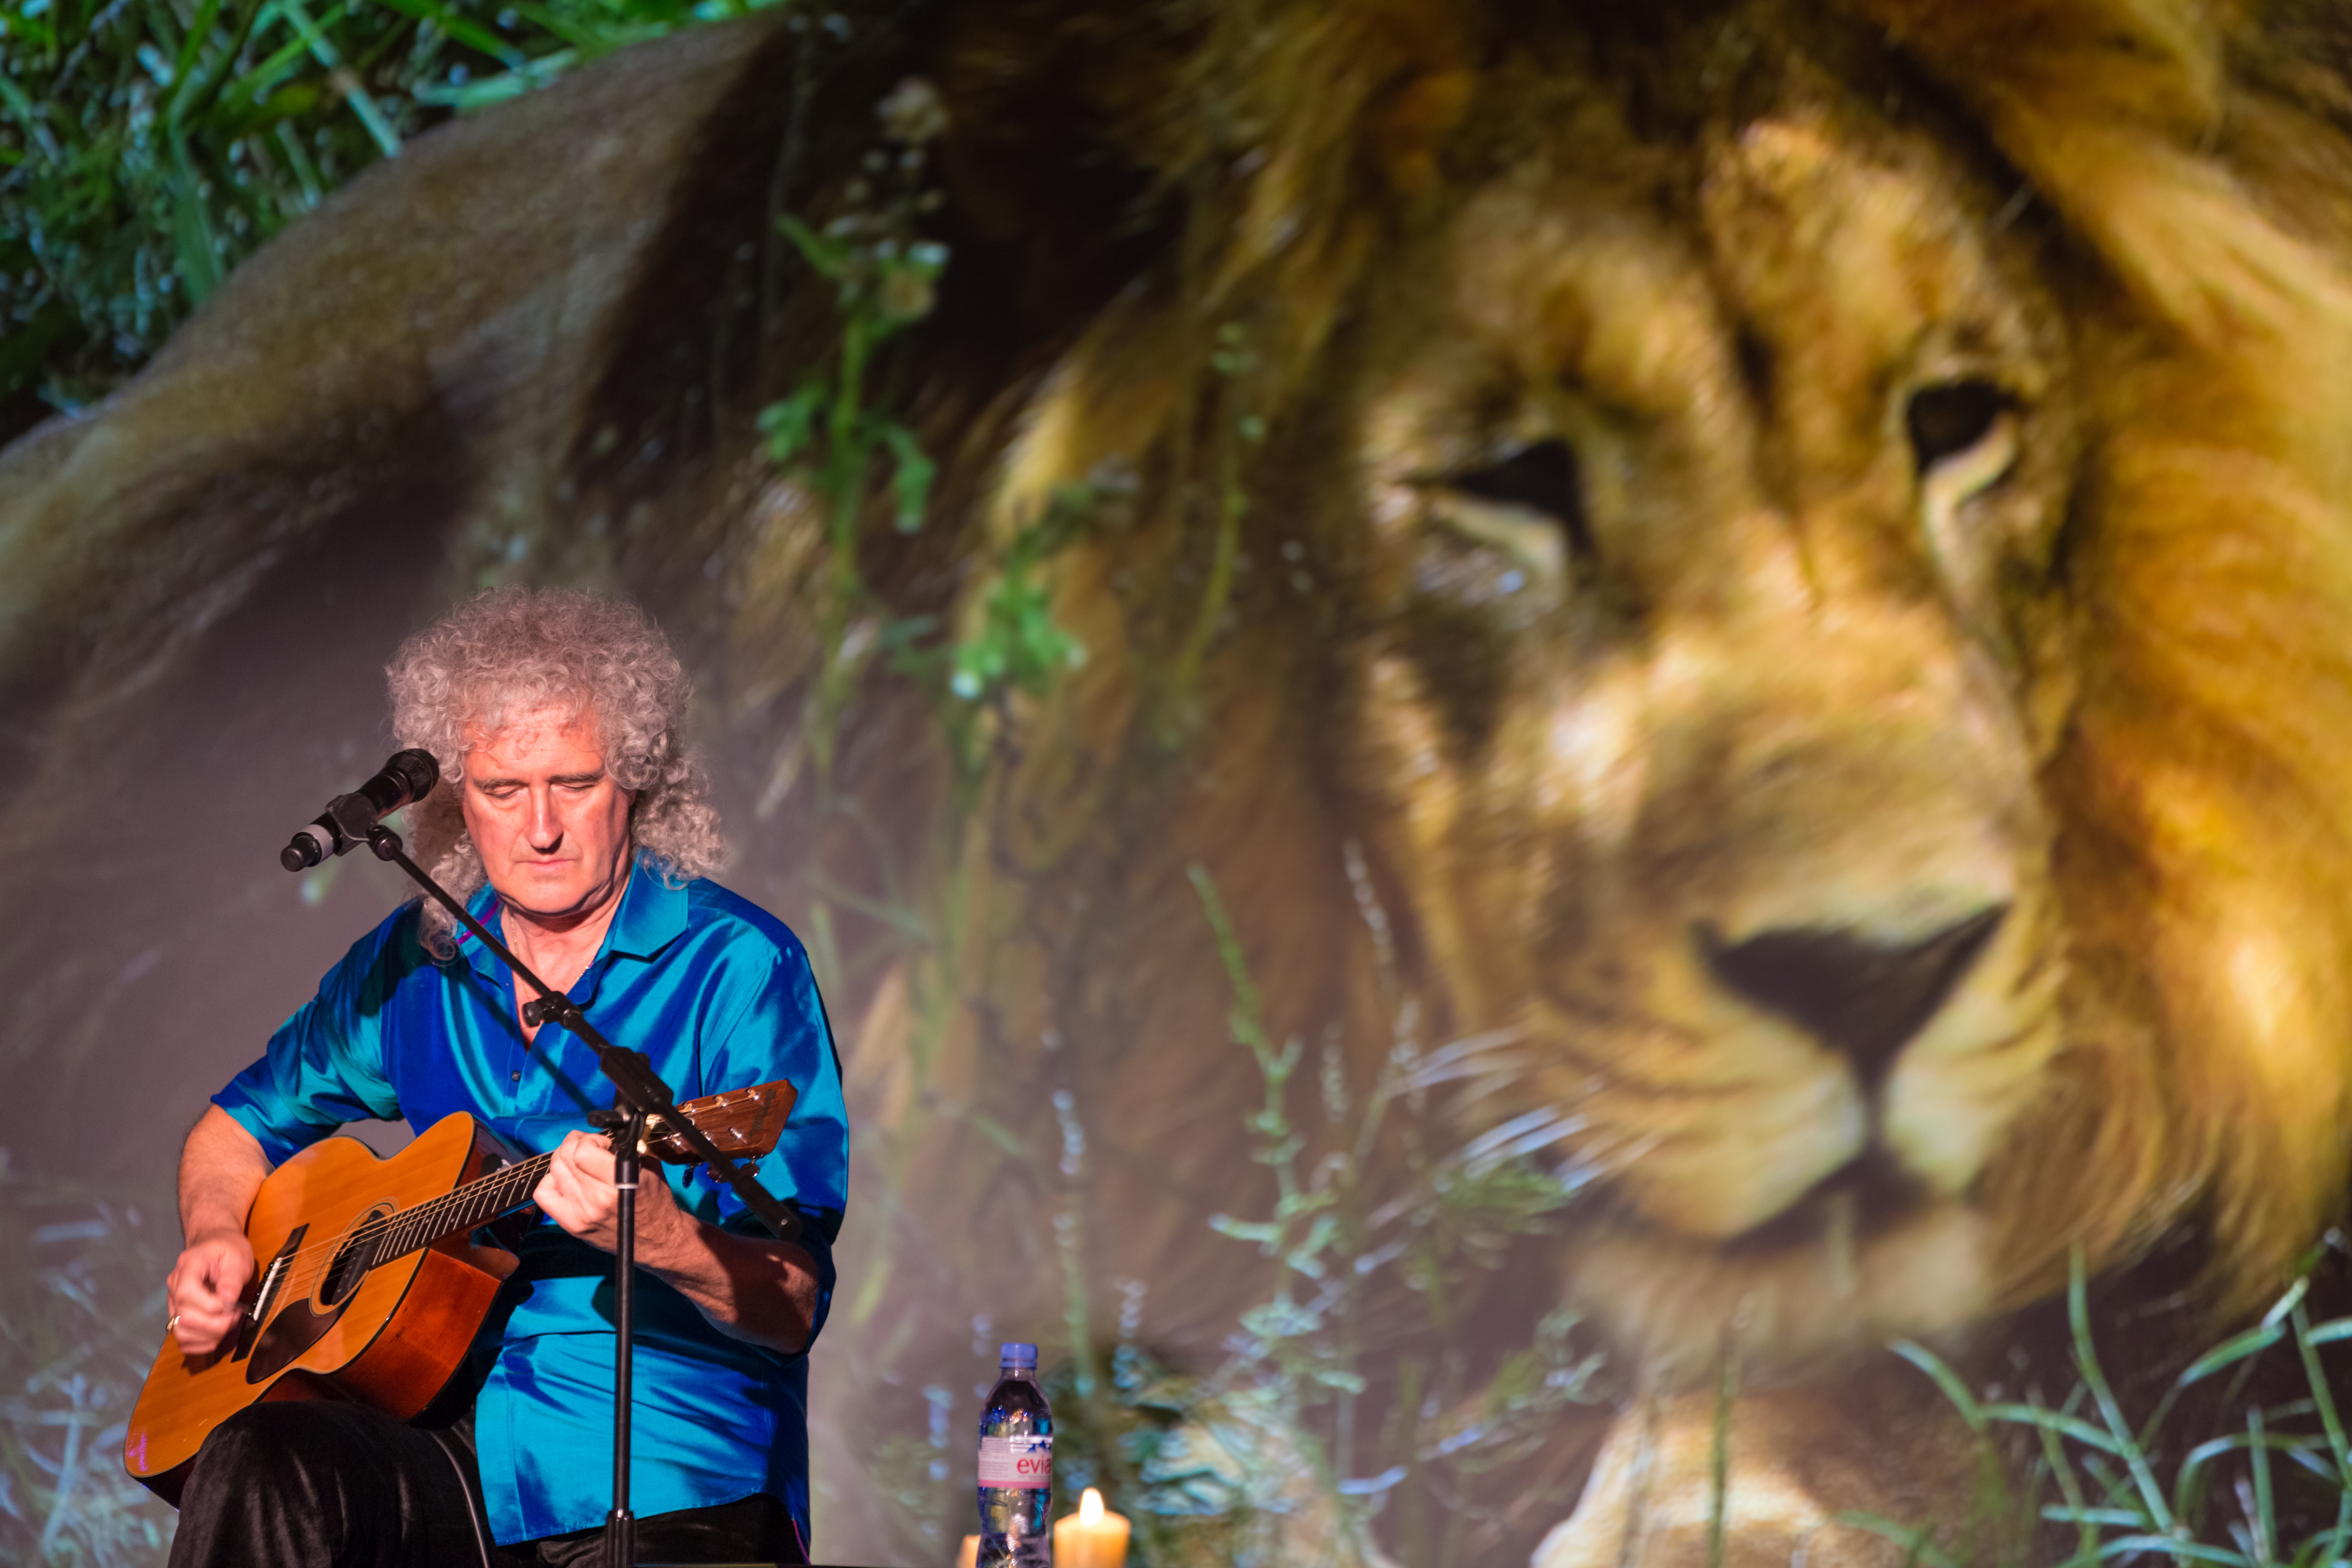 JLR_An_Evening_With_Brian_May (101 of 148).jpg